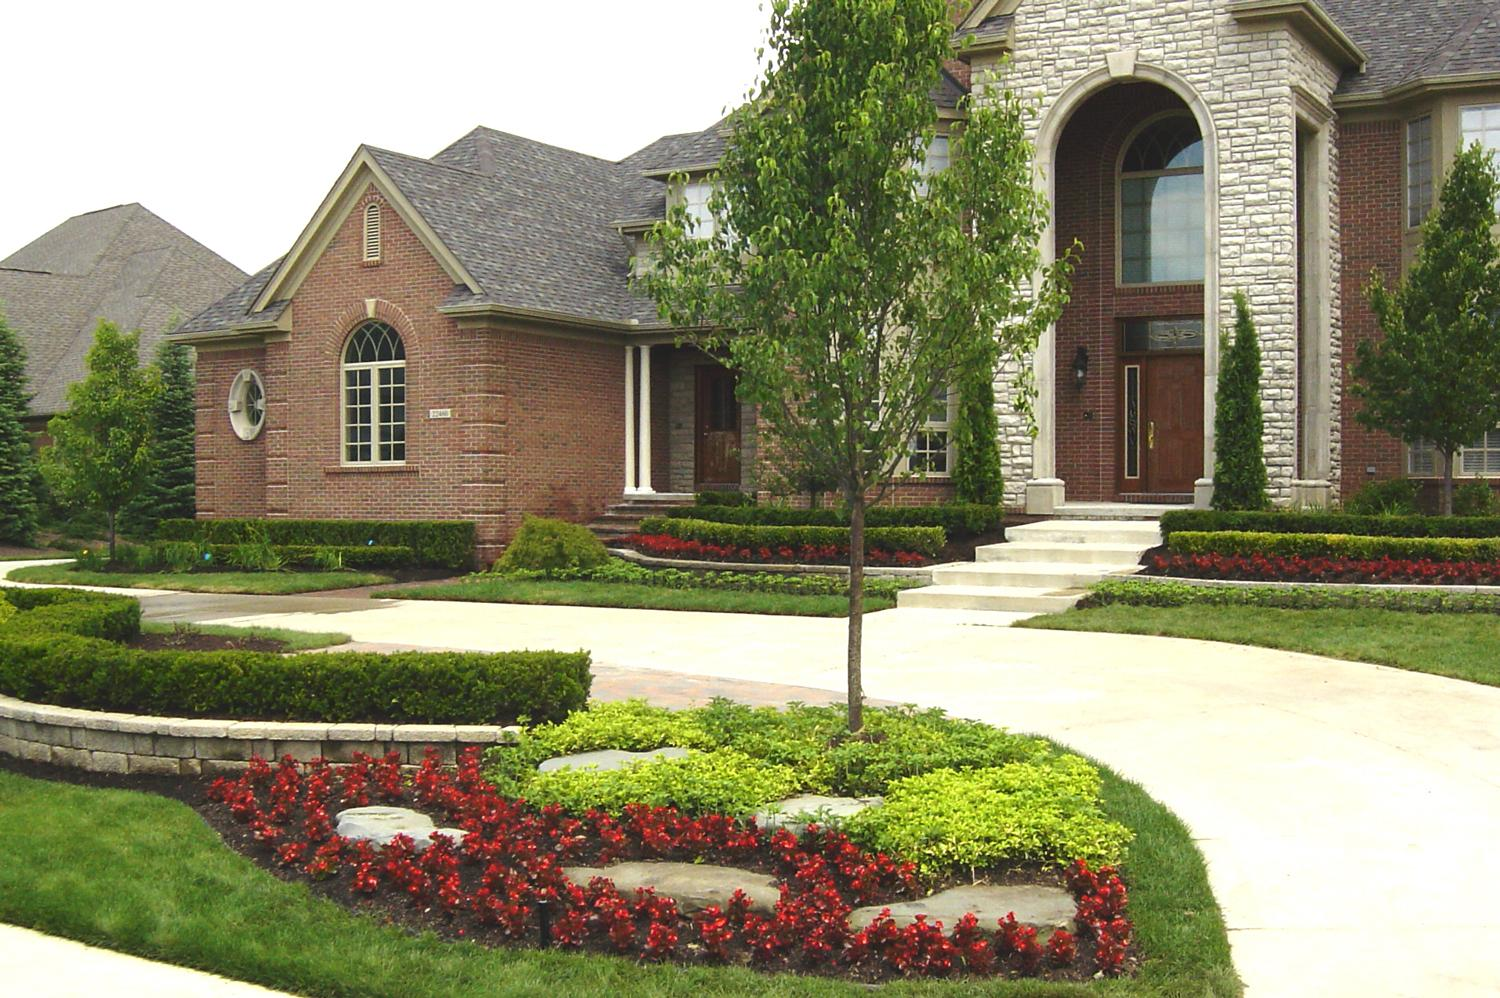 Simple Landscape Ideas For Landscaping Front Yard